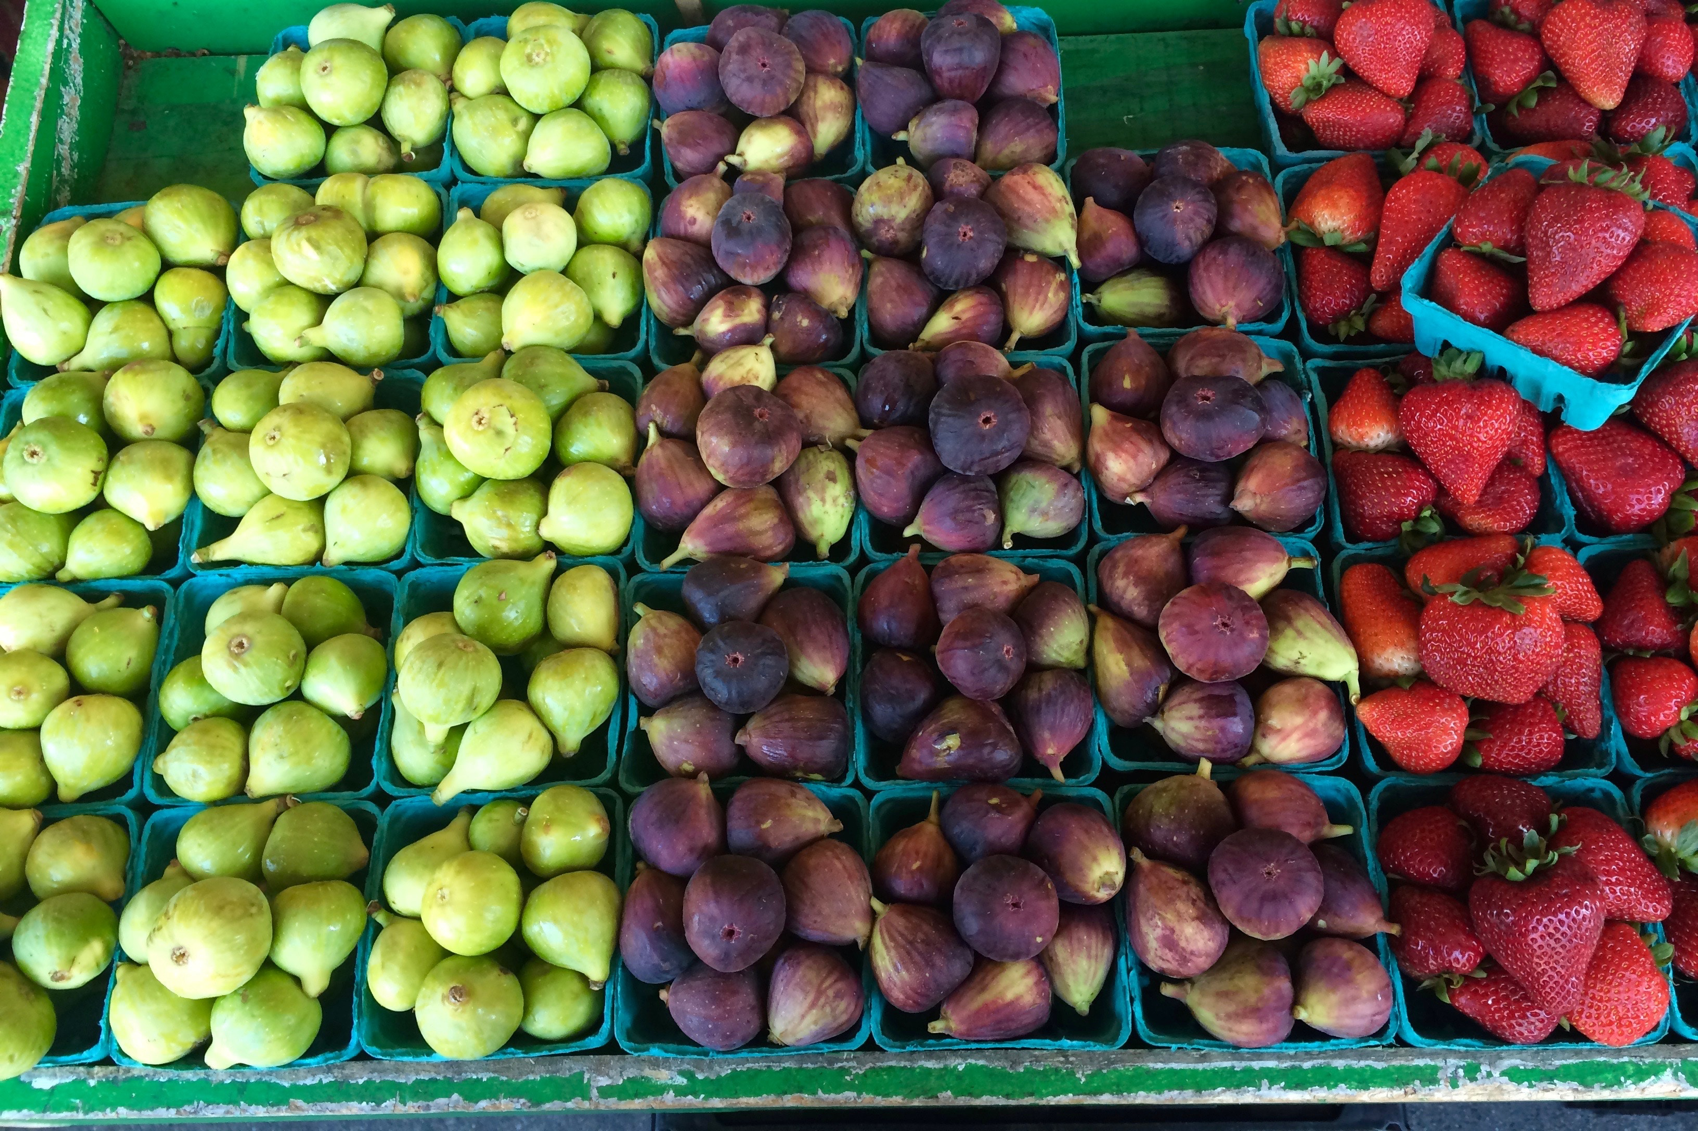 Visit the Farmers Markets